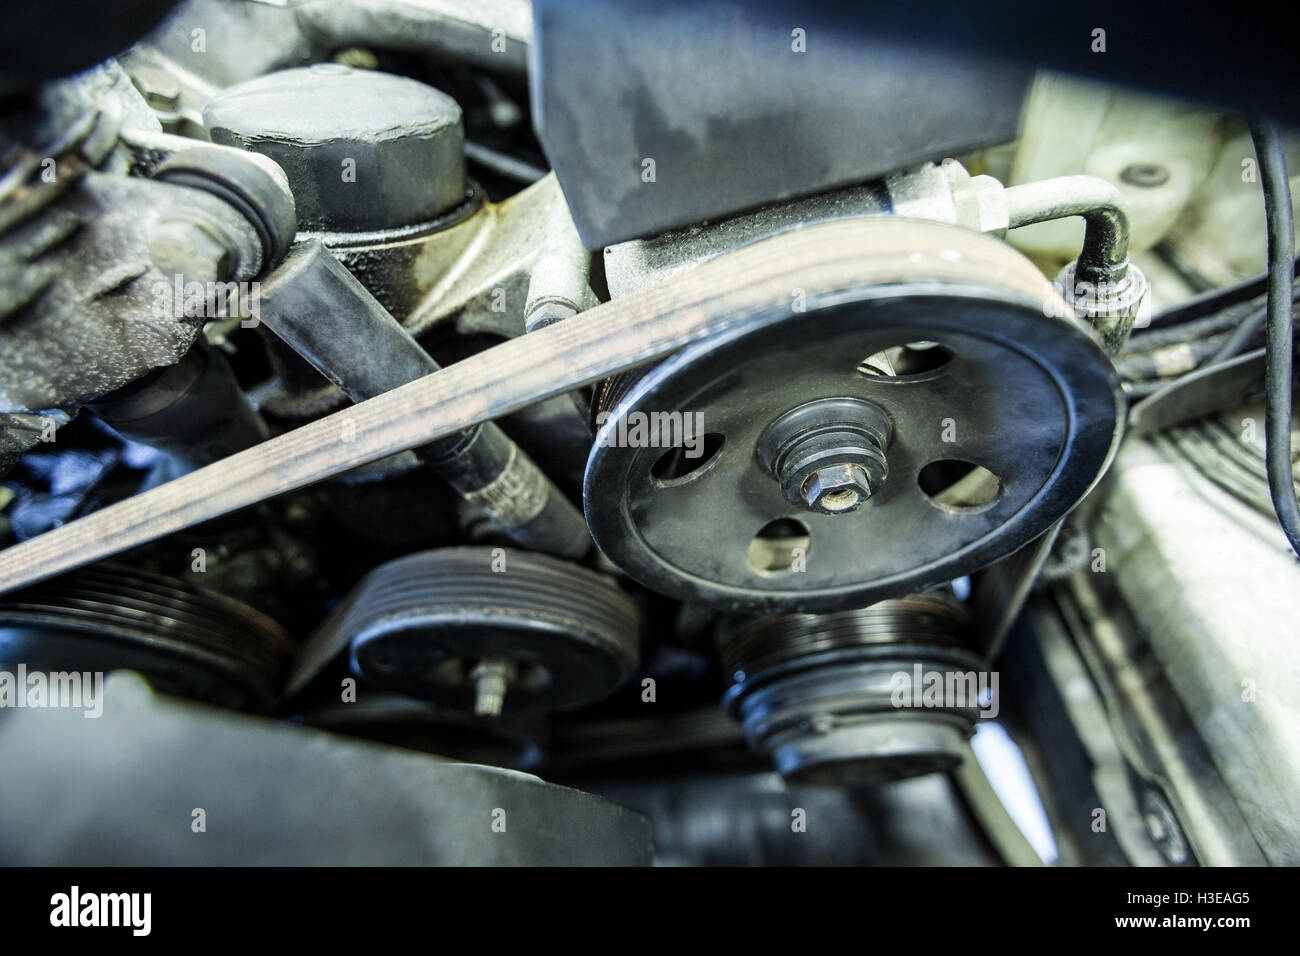 Close-up of car engine and components Stock Photo: 122632165 - Alamy